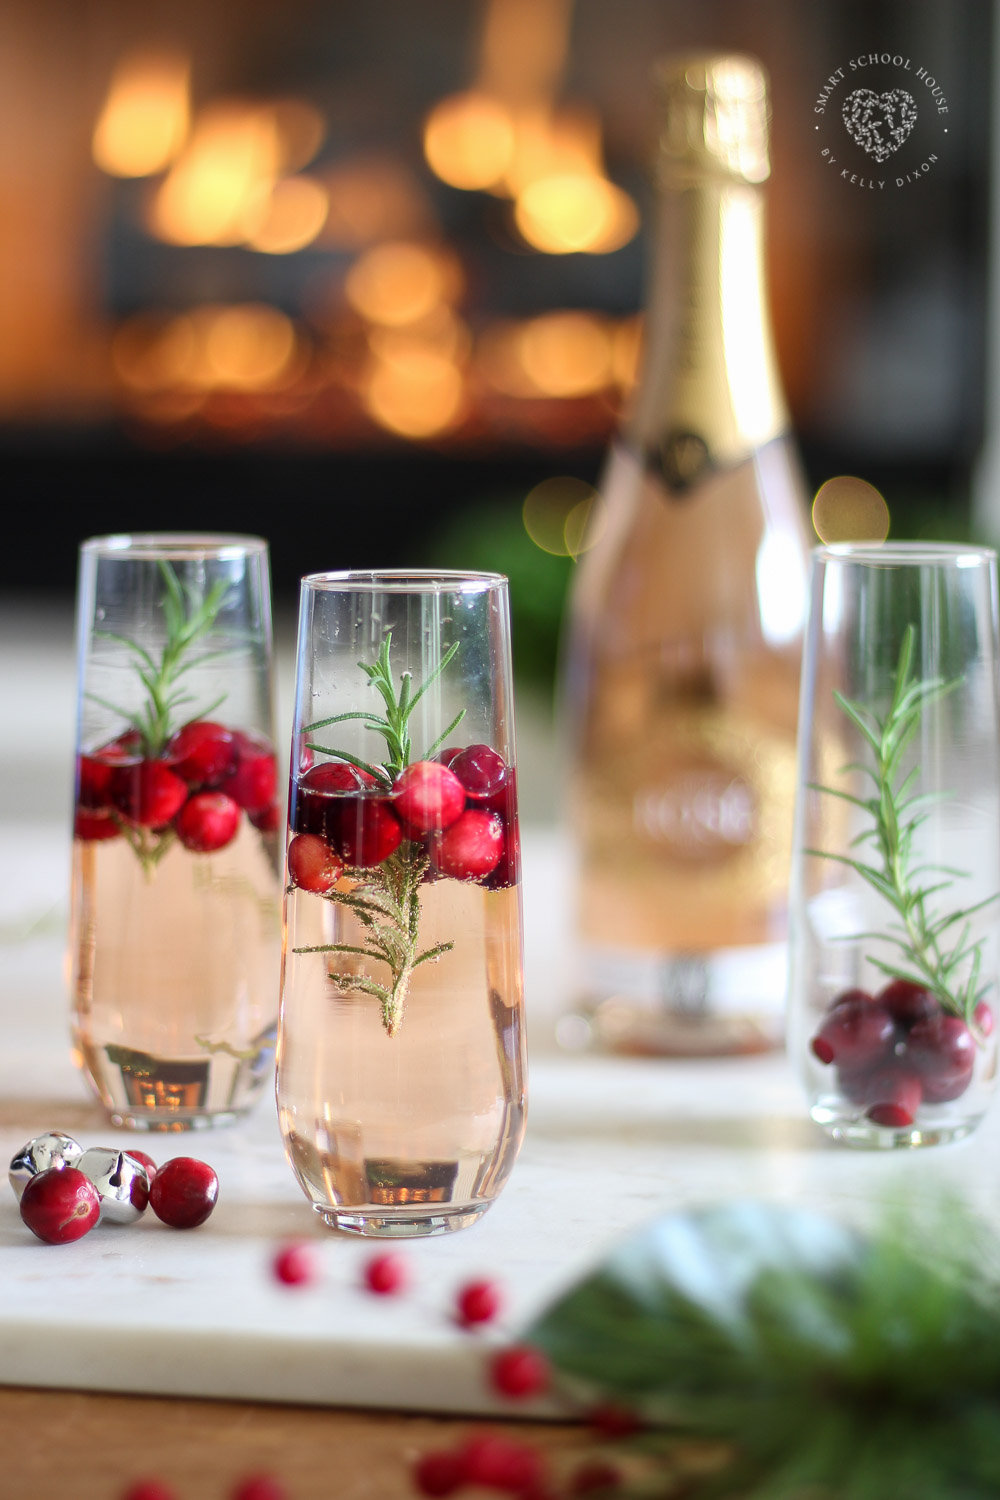 Christmas Sparkling Rosé & Delicious Appetizer Idea #ChristmasDrinks #ChristmasCocktails #ChristmasAppetizers #ChristmasPartyIdeas